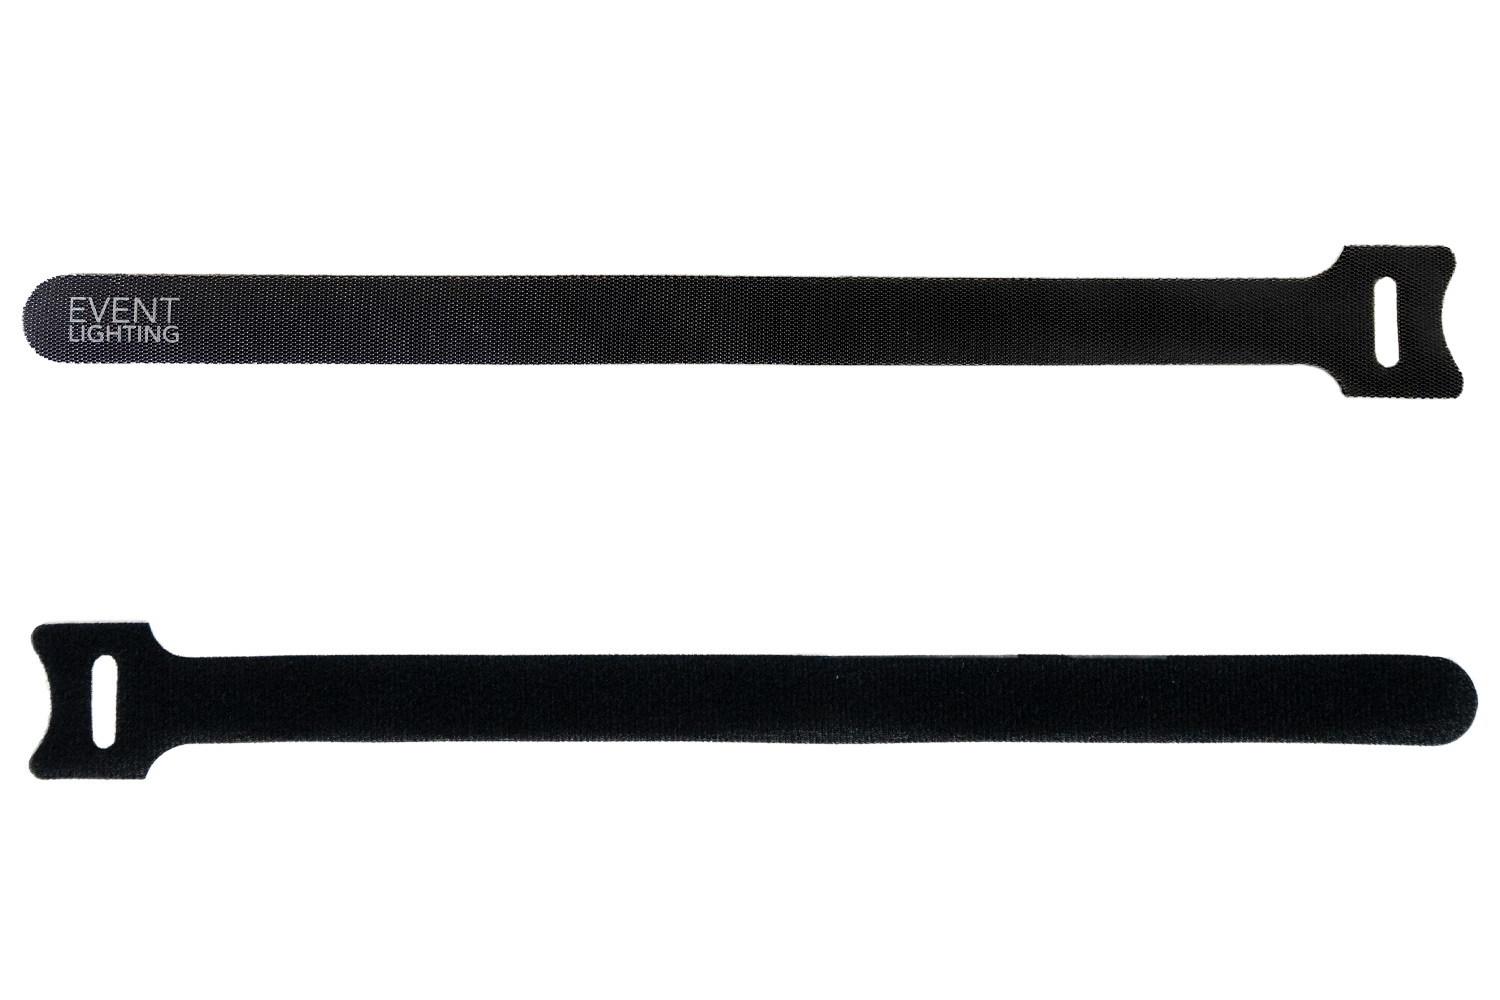 VT50H - Heavy Duty Velcro Tie 50-Pack (Black)